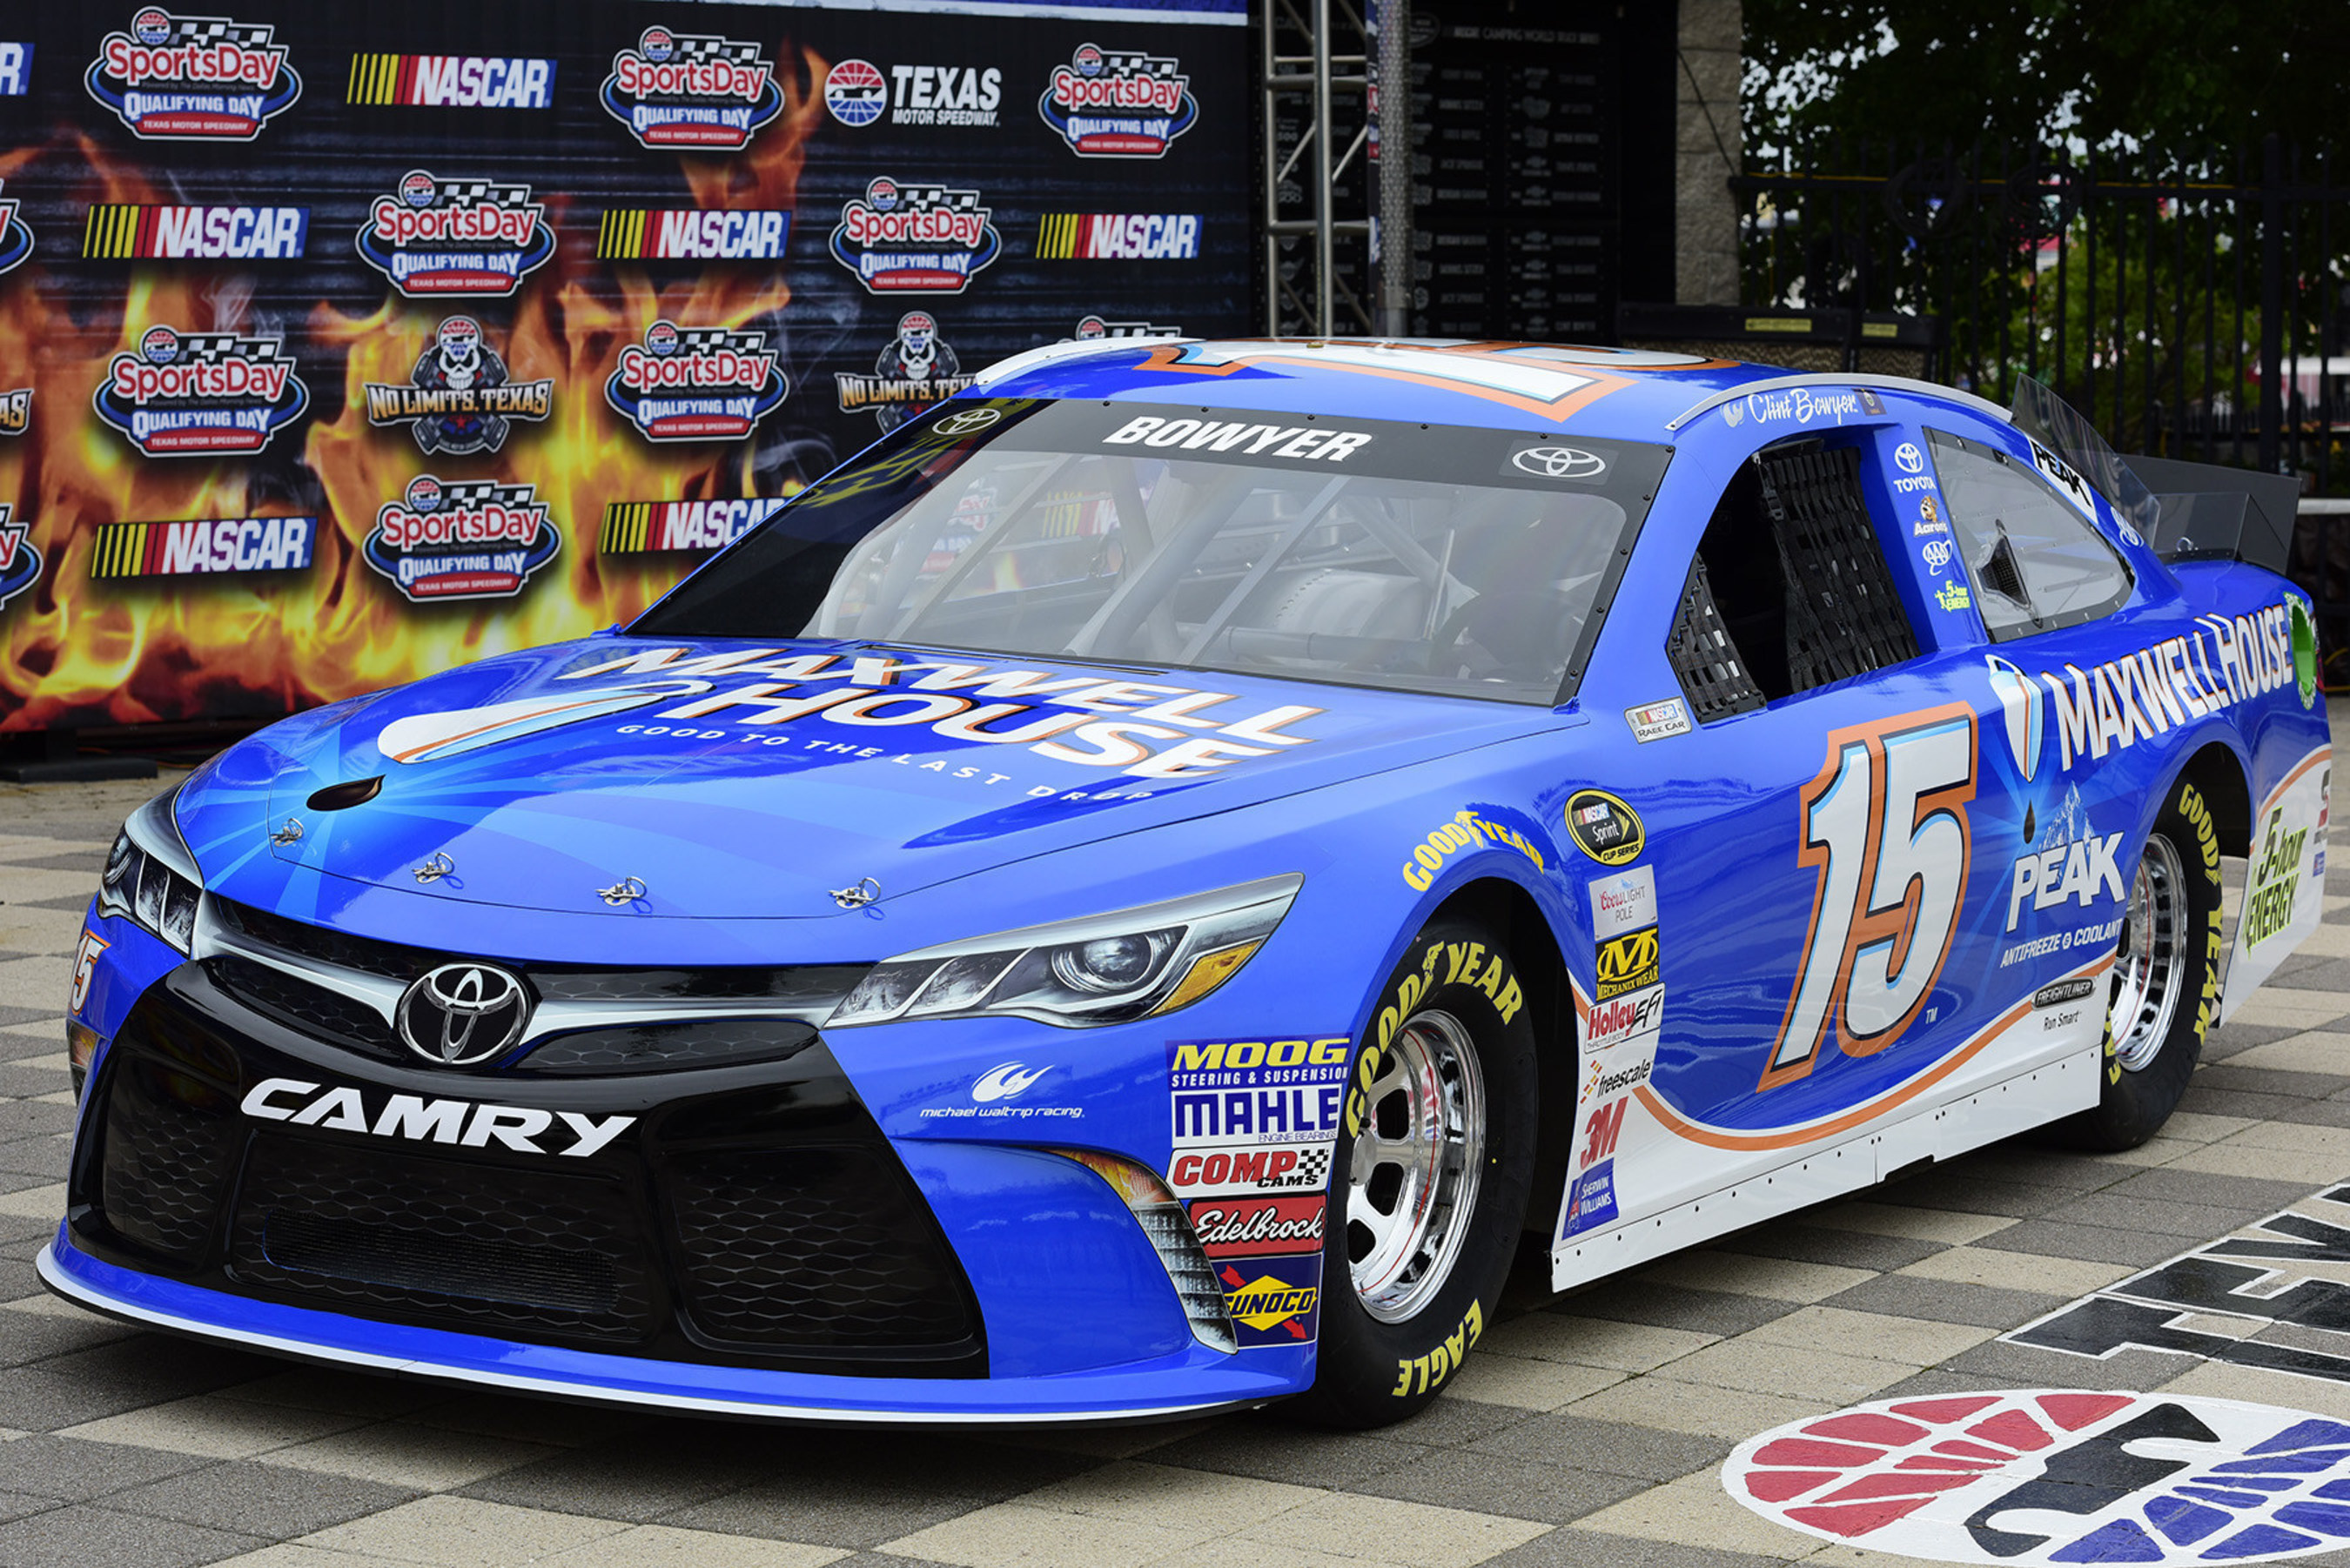 Today, the No. 15 Maxwell House Toyota Camry was unveiled at a press conference at Texas Motor Speedway. Photo credit: Chris Graythen, Getty Images